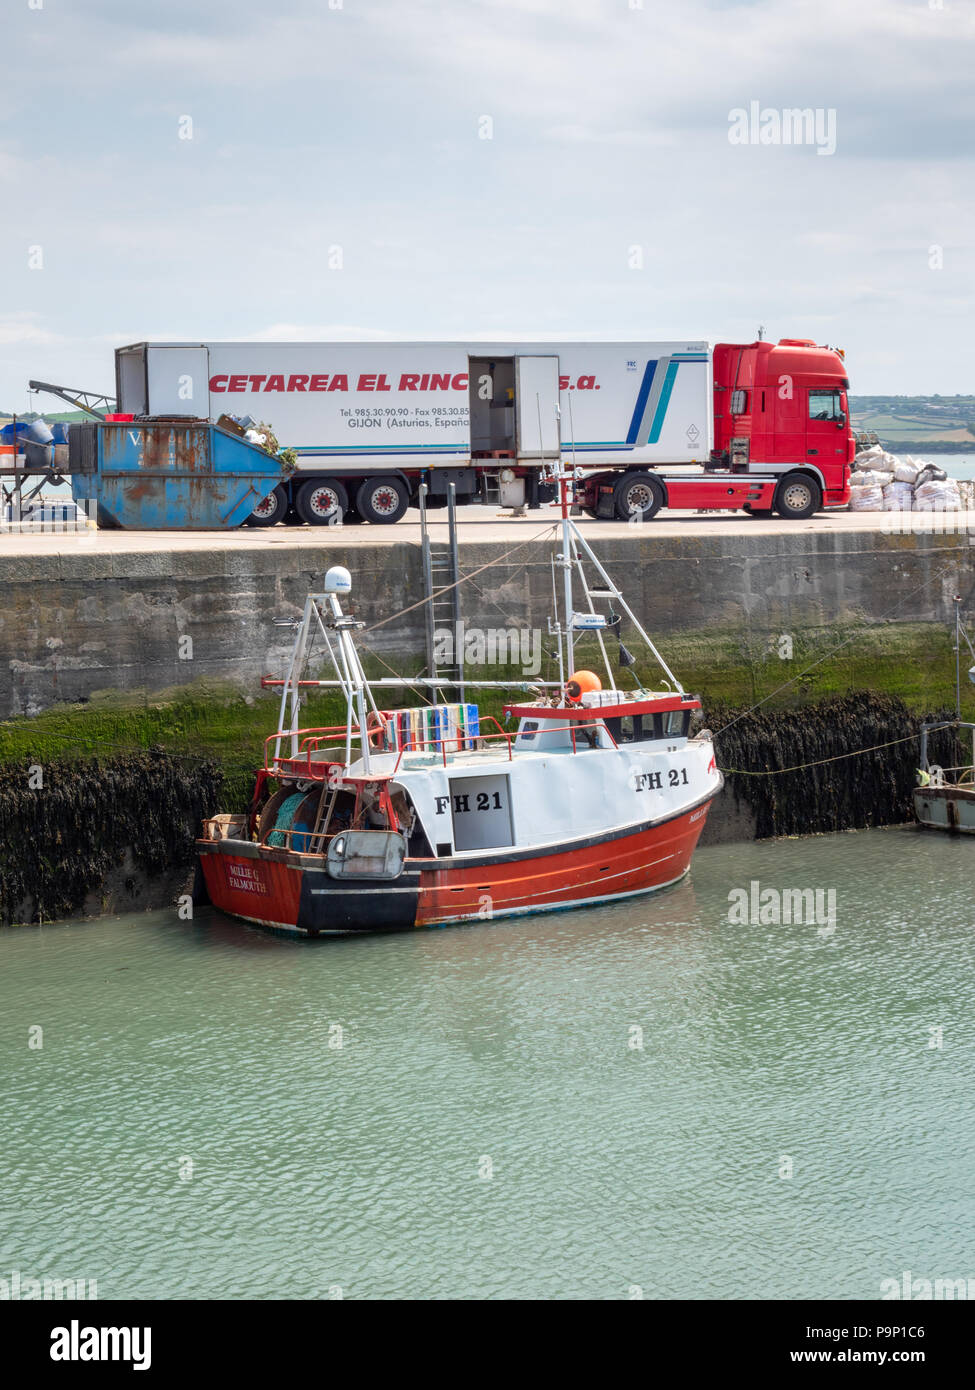 A Spanish lorry on the quay at Padstow Harbour Cornwall UK being loaded with fish caught in the UK for export to Spain and Europe - Stock Image